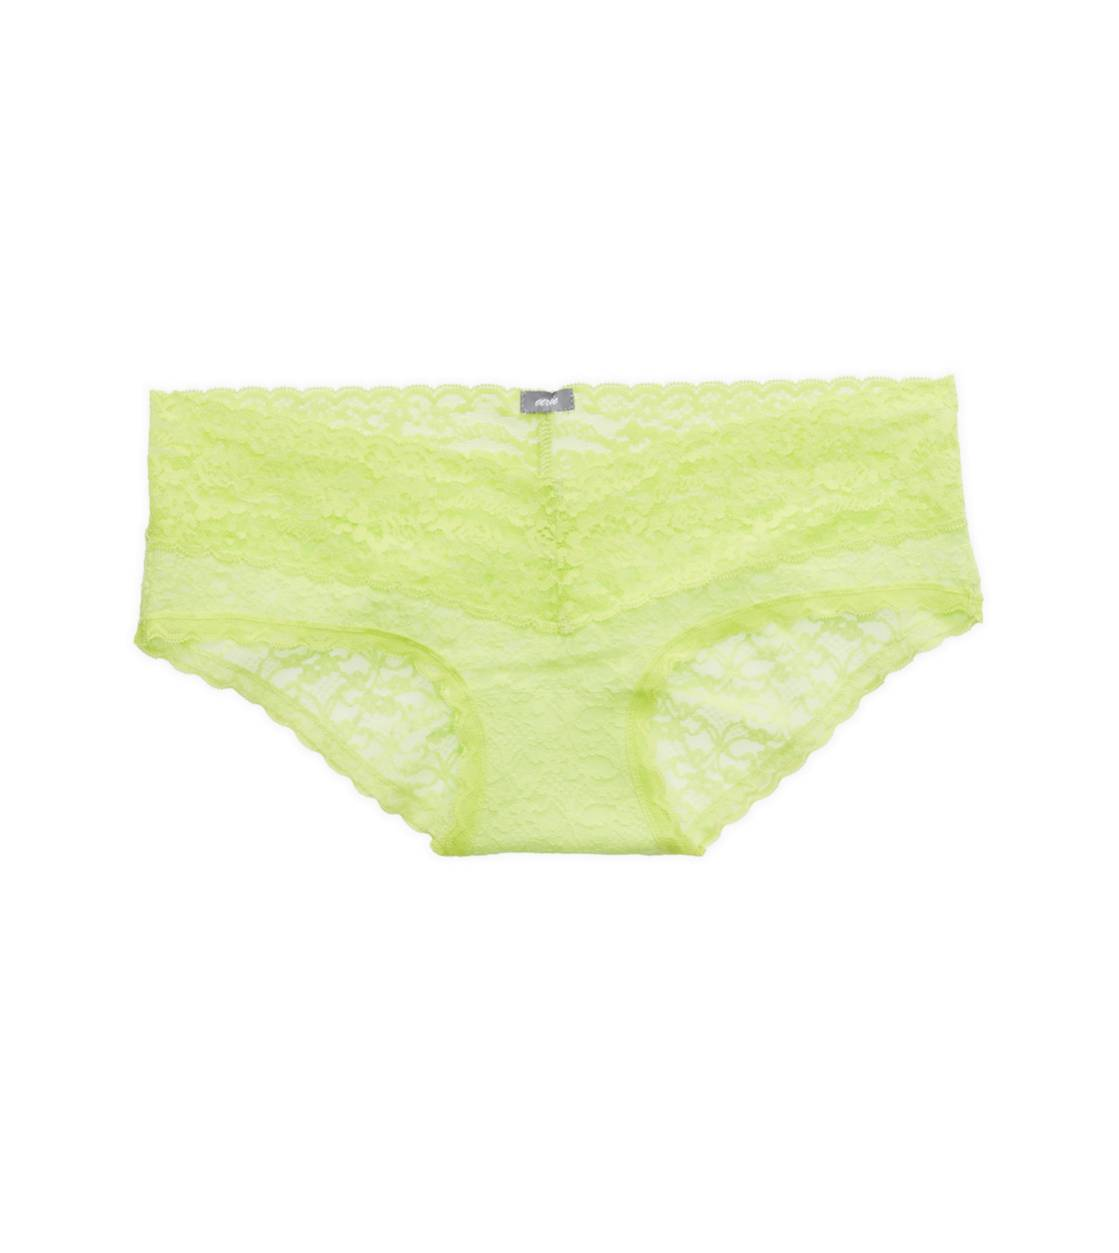 Sharp Green Aerie Vintage Lace Boybrief